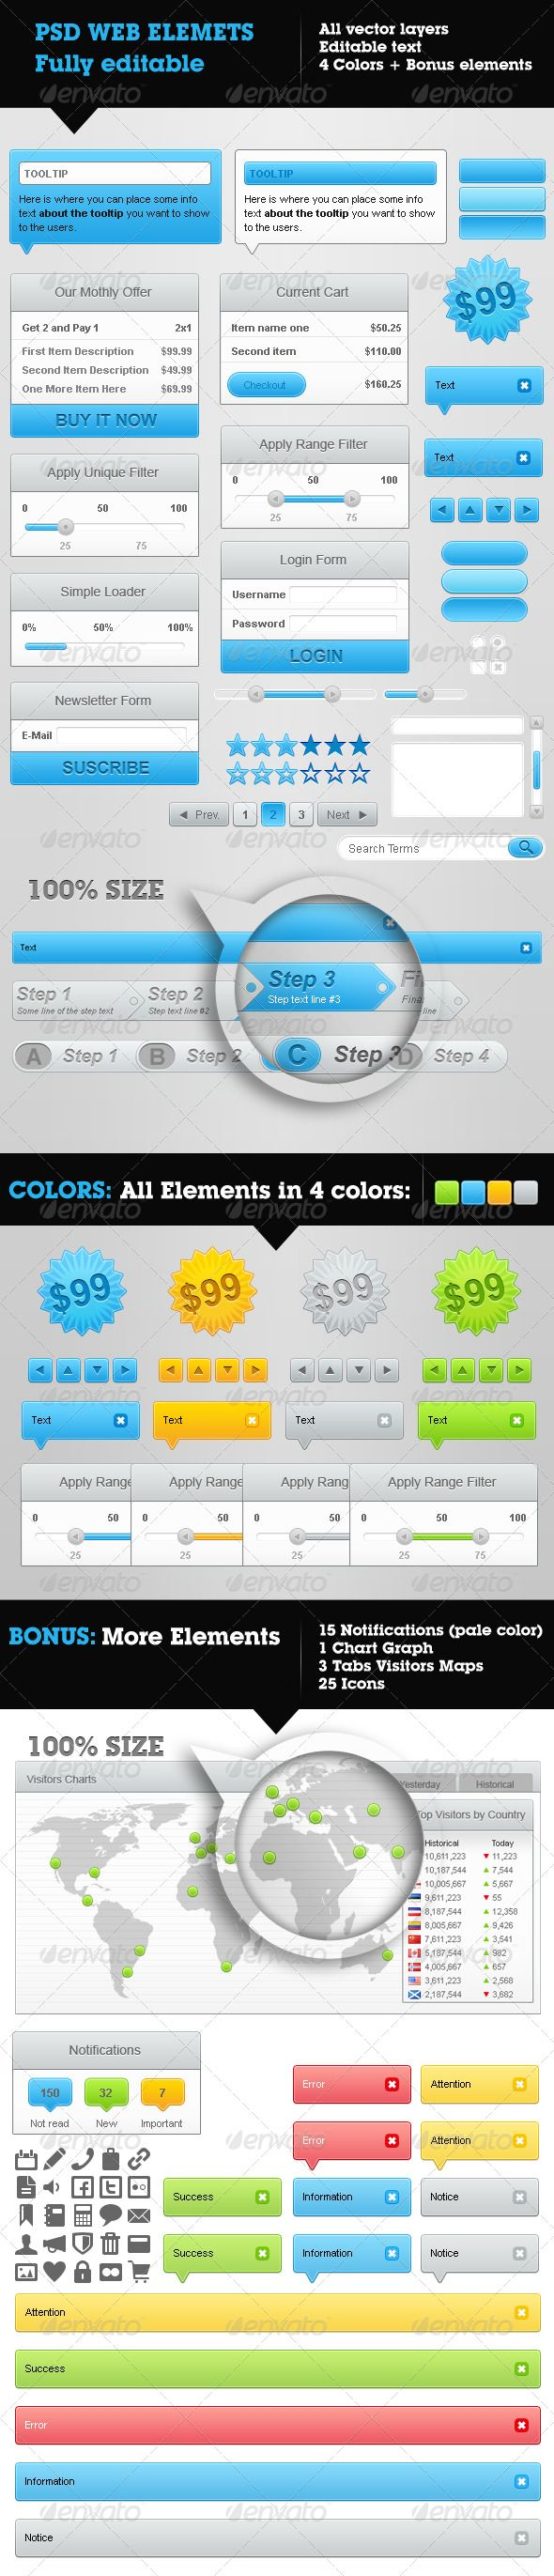 Web Elements Collection - 4 colors & Bonus  #GraphicRiver         Web Elements collection in 4 different colors.   Included elements (all of these in 4 colors): - 2 Tooltip popups - 1 small Tooltip popup - 2 Buttons (rounded and square) with 3 states (normal, hover, active) - 1 Badge - 4 directional arrows - 1 Monthly Offer Box - 1 Current Cart Box - 1 Unique Filter Box with single slider - 1 Range Filter Box with range slider - 1 Login Box - 1 Simple Loader Box - 1 Newsletter suscription…